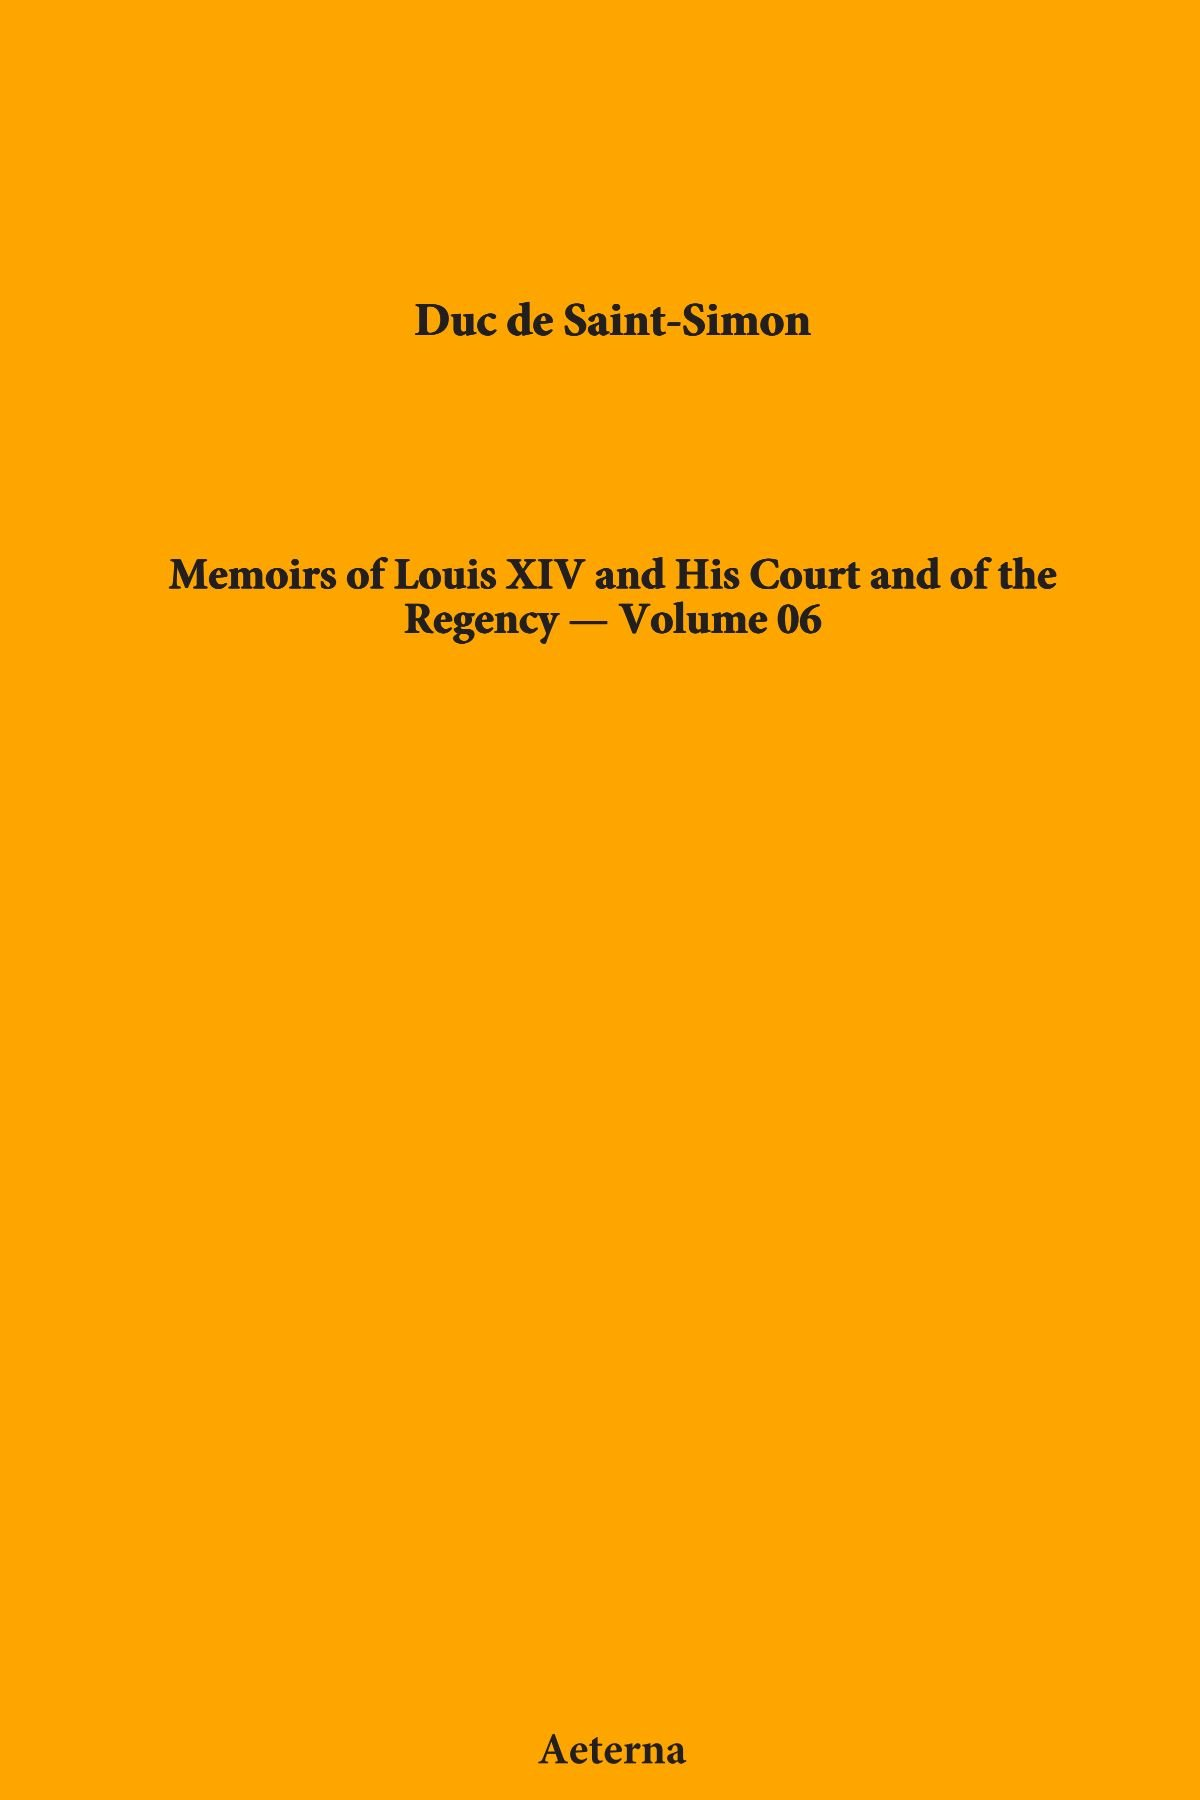 Read Online Memoirs of Louis XIV and His Court and of the Regency — Volume 06 PDF